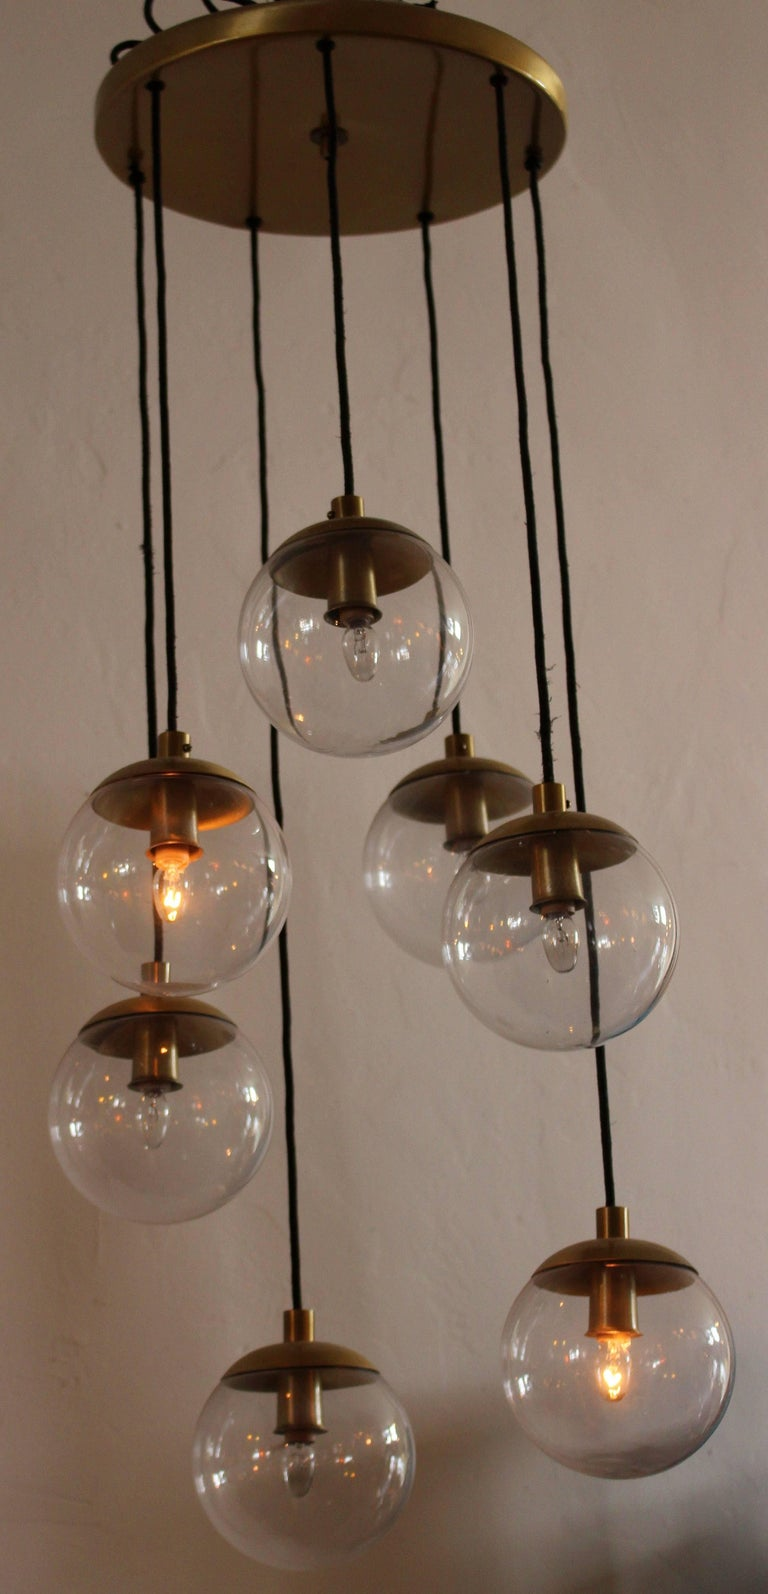 Mid-20th Century RAAK Cascade Chandelier For Sale